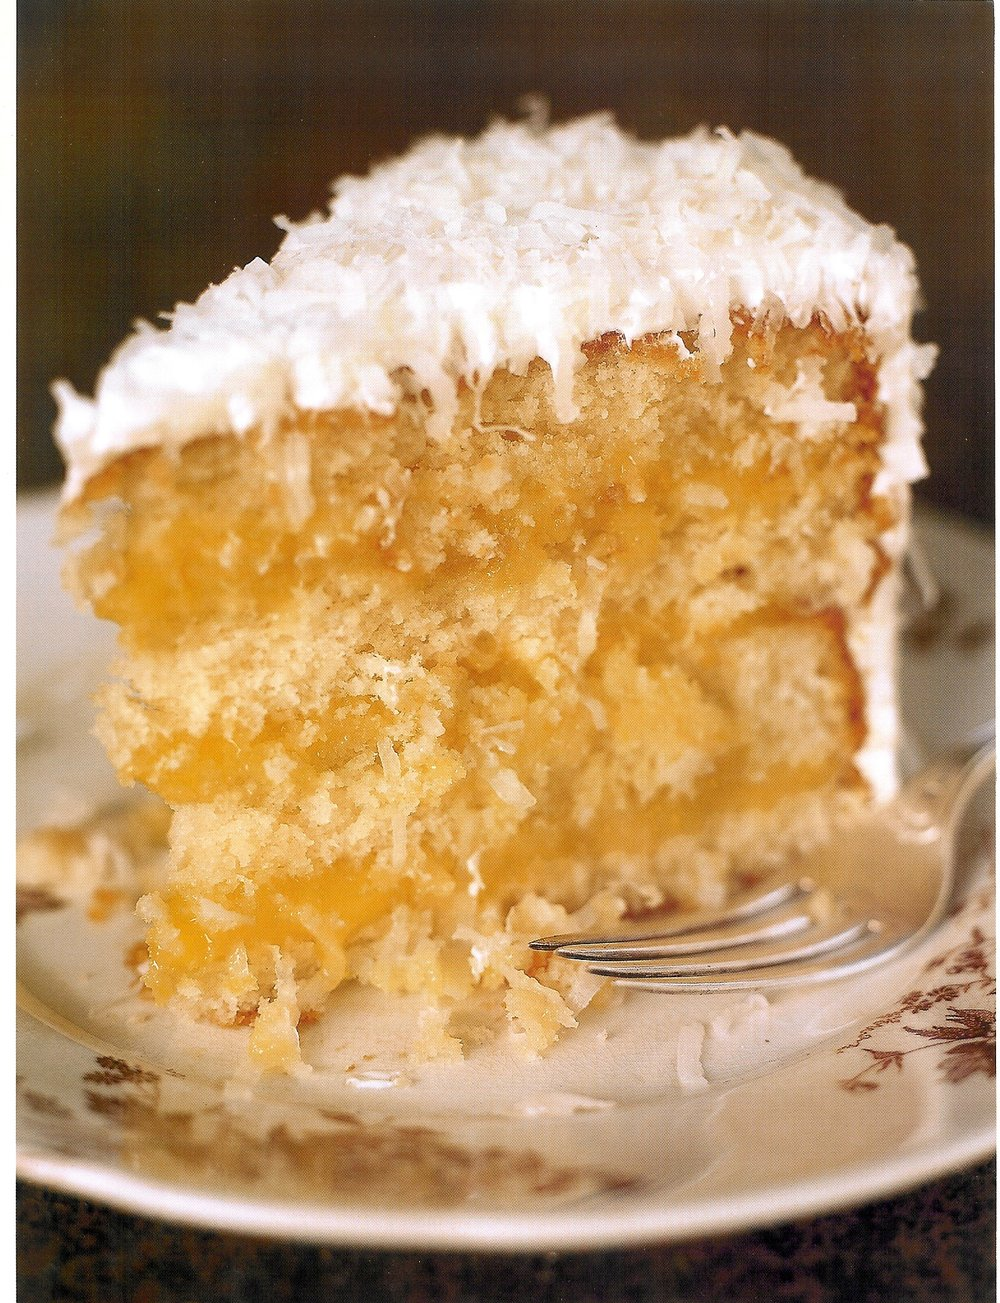 coconut_cake copy.jpg